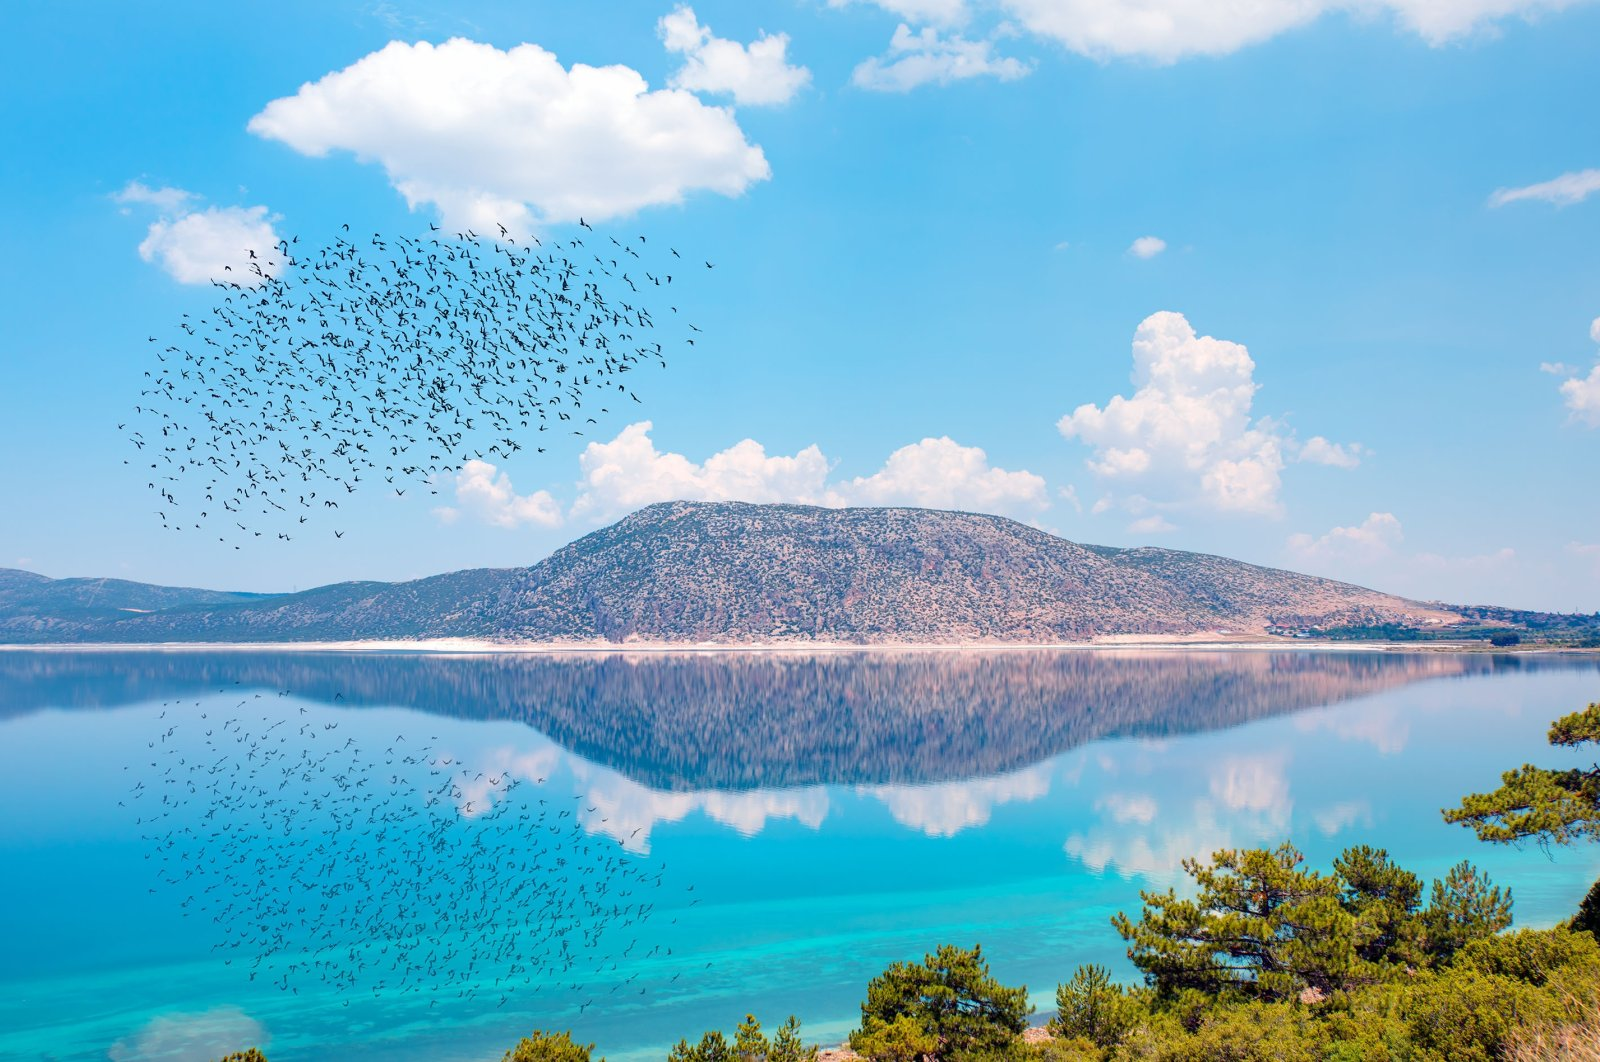 Lake Salda, dubbed the Turkish Maldives, dazzles nature lovers with its crystal-clear water and white beaches, Burdur province, southwestern Turkey. (Shutterstock Photo)